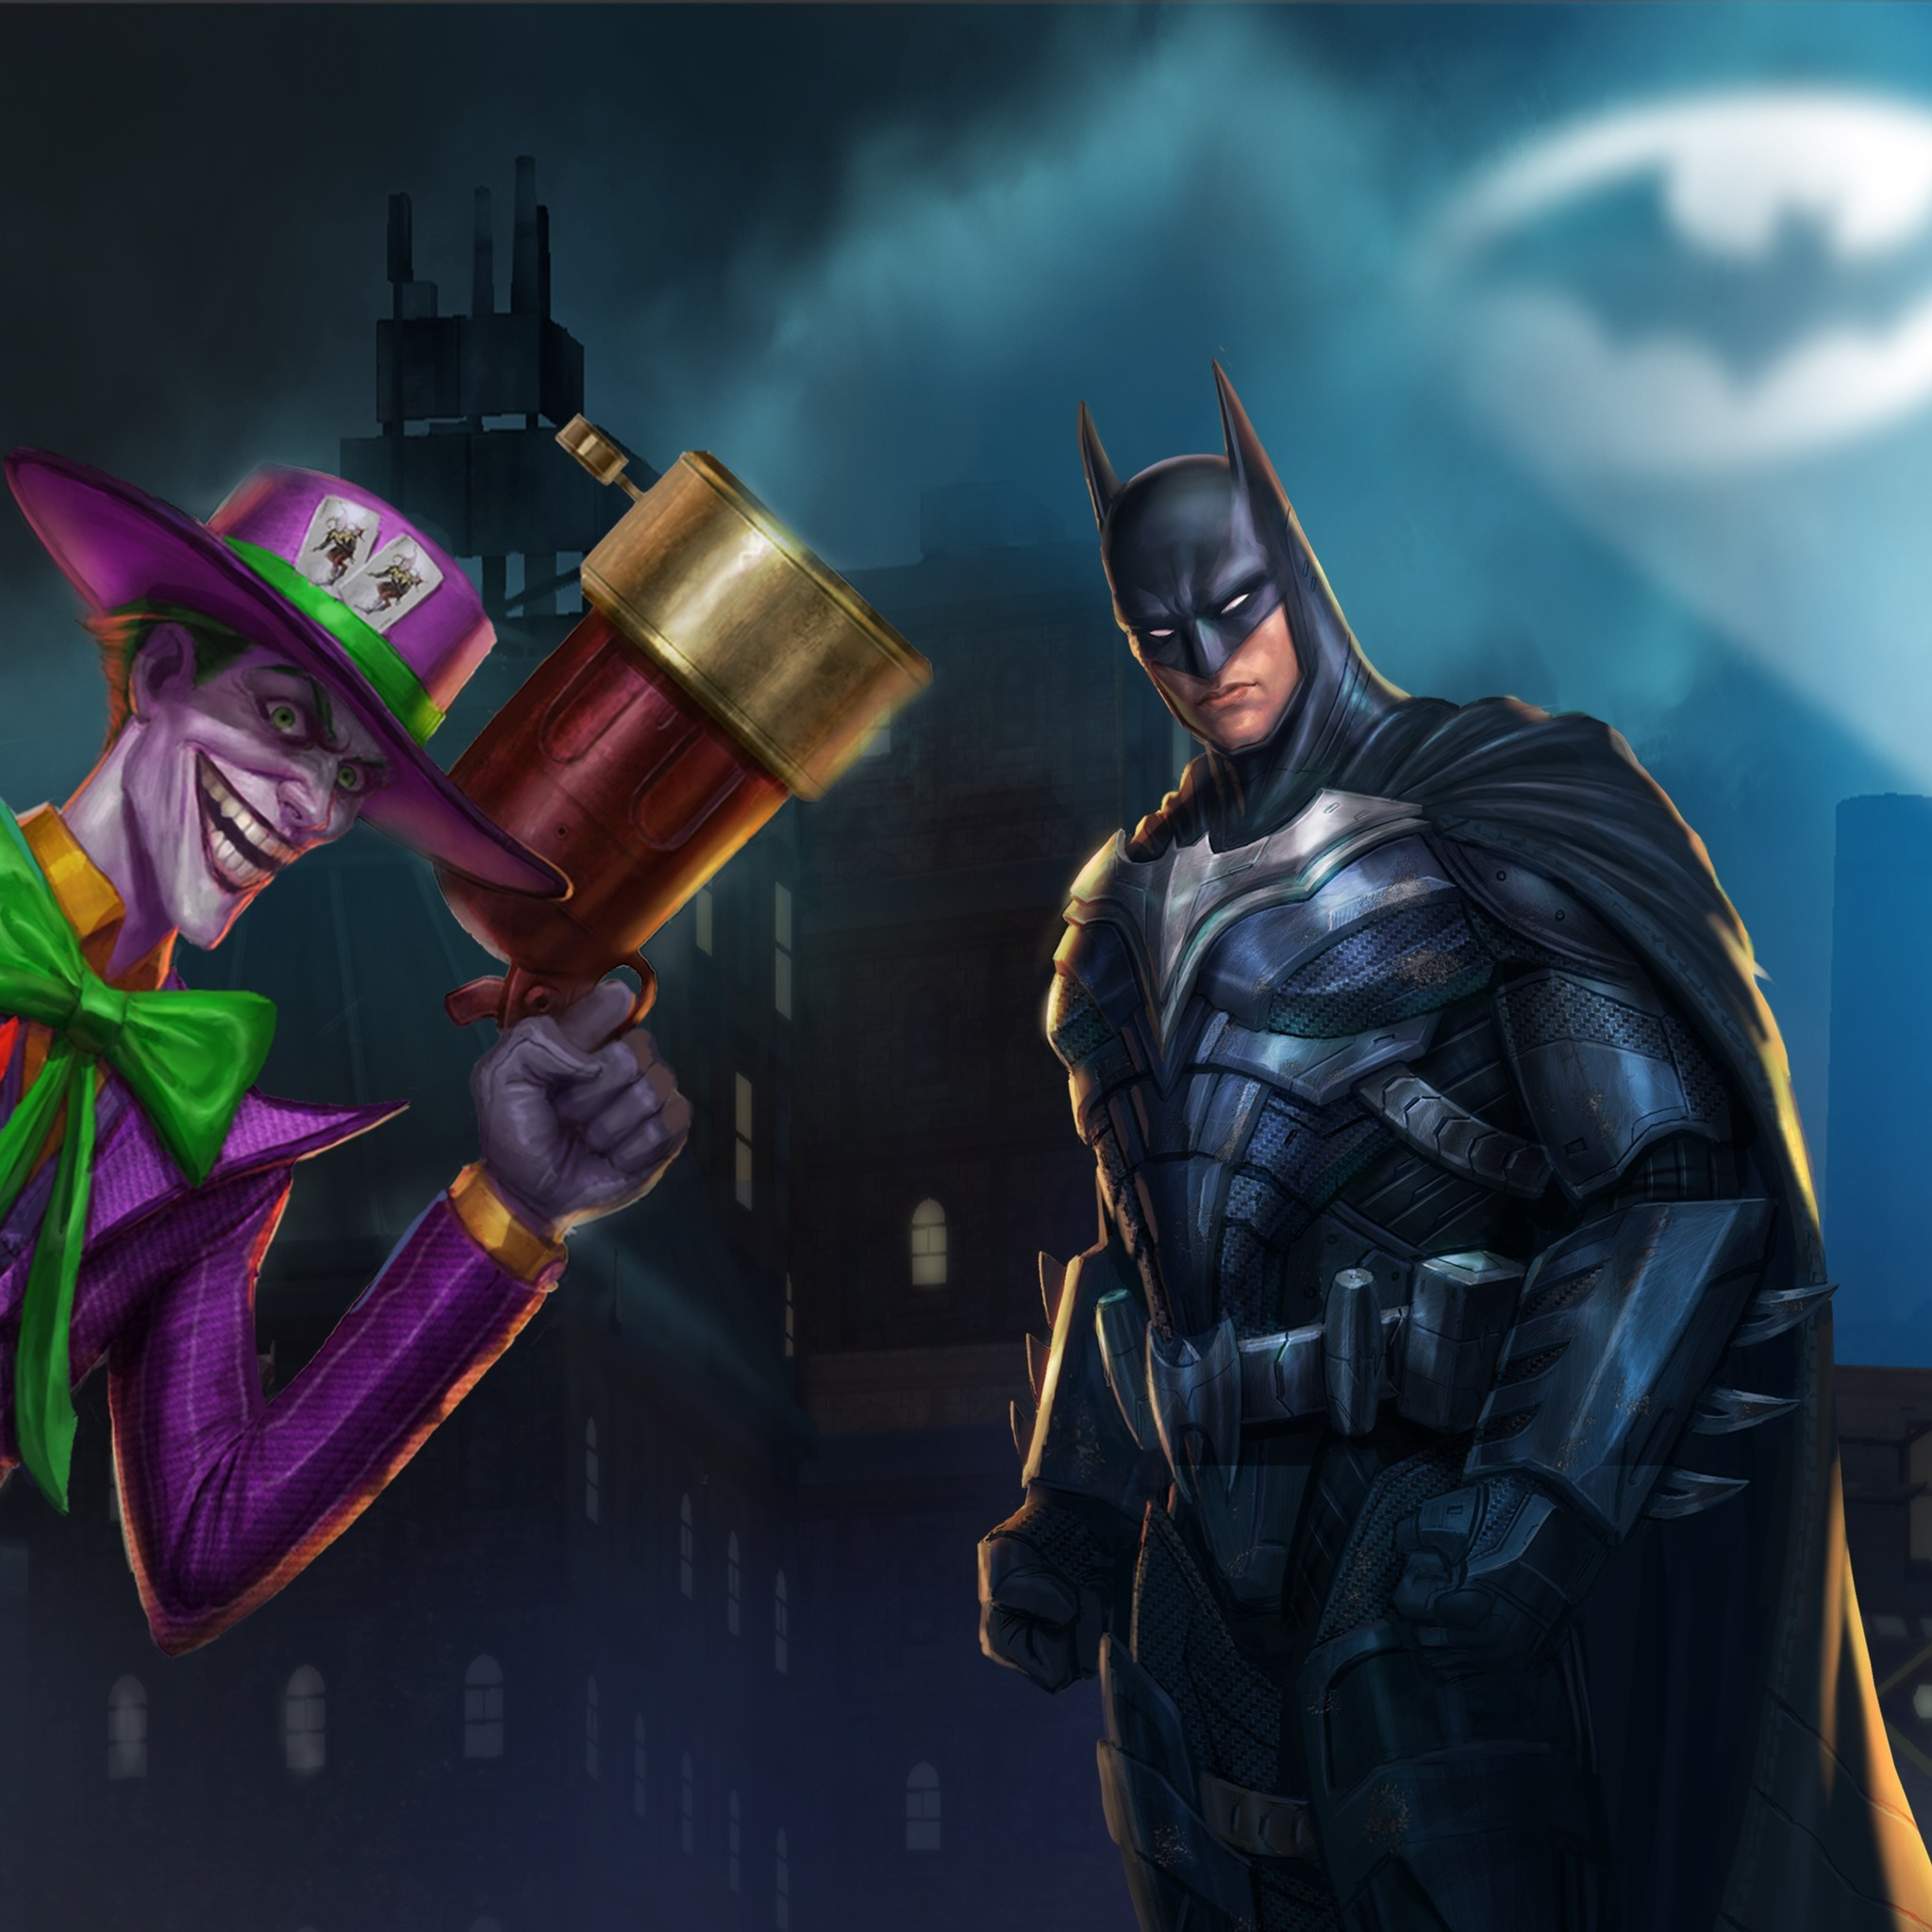 batman and joker 4k art